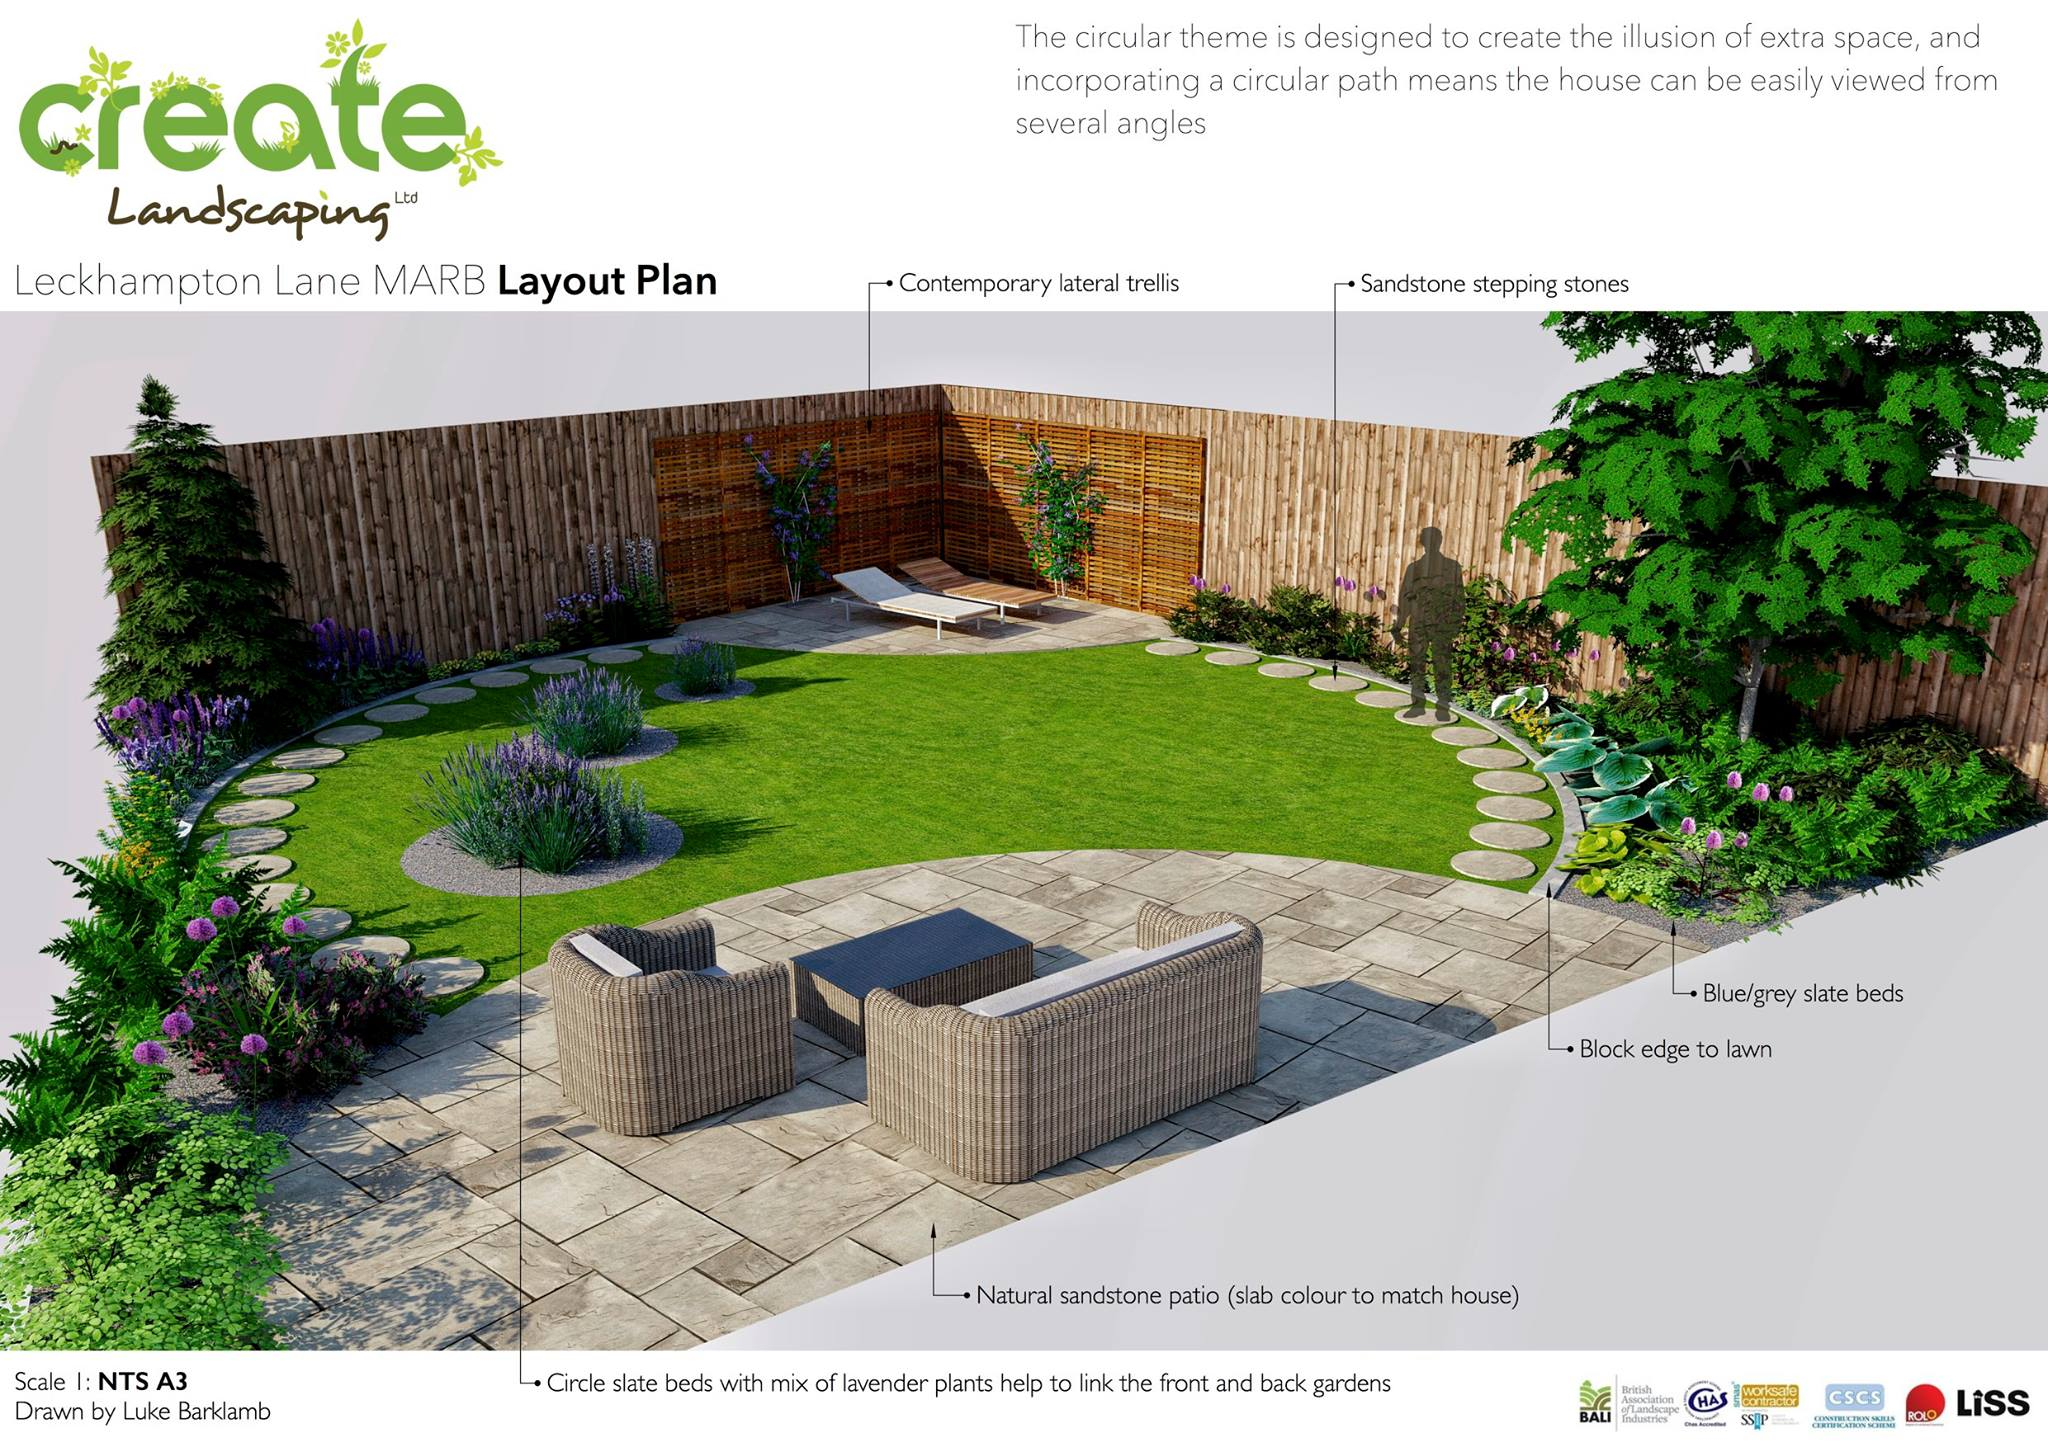 Luke Barklamb Latest Commercial Landscape Design Project